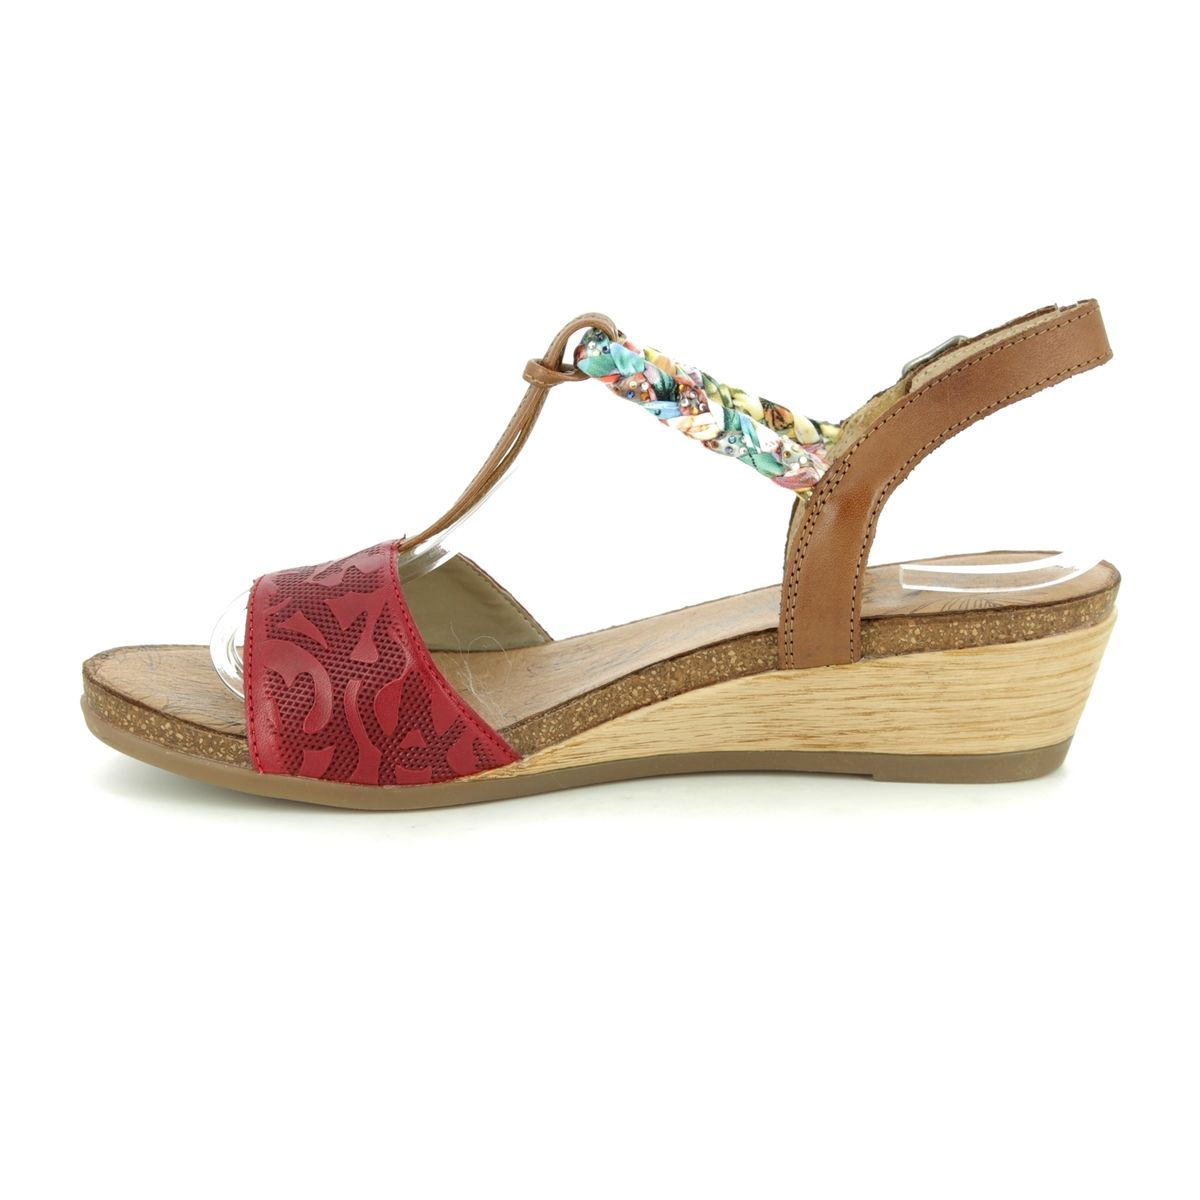 33 Red Remonte leather Wedge Sandals R4459 Emily nw80OPk